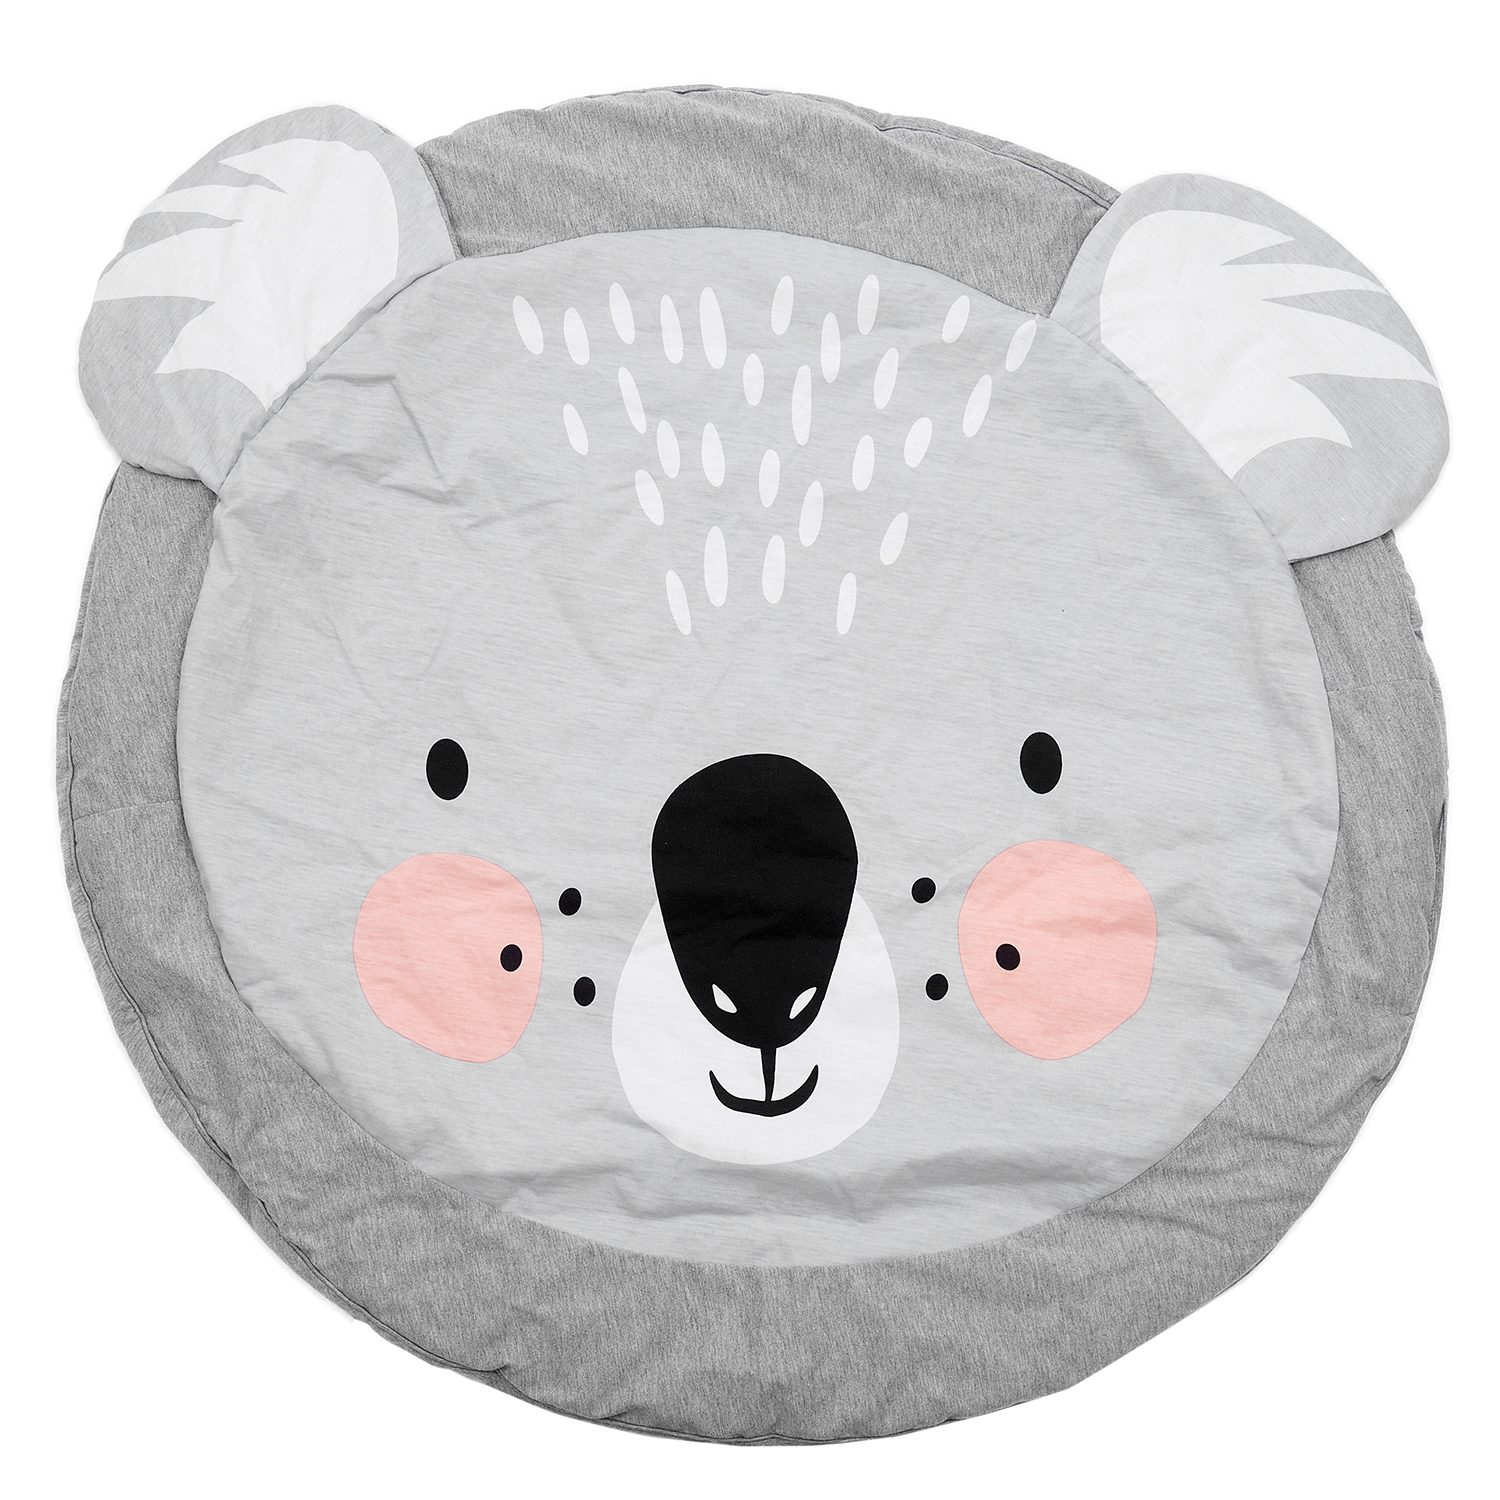 90CM Kids Play Game Mats Round Carpet Rugs Mat Cotton Crawling Blanket Floor Carpet For Kid Room Decoration INS Baby Gifts Koala